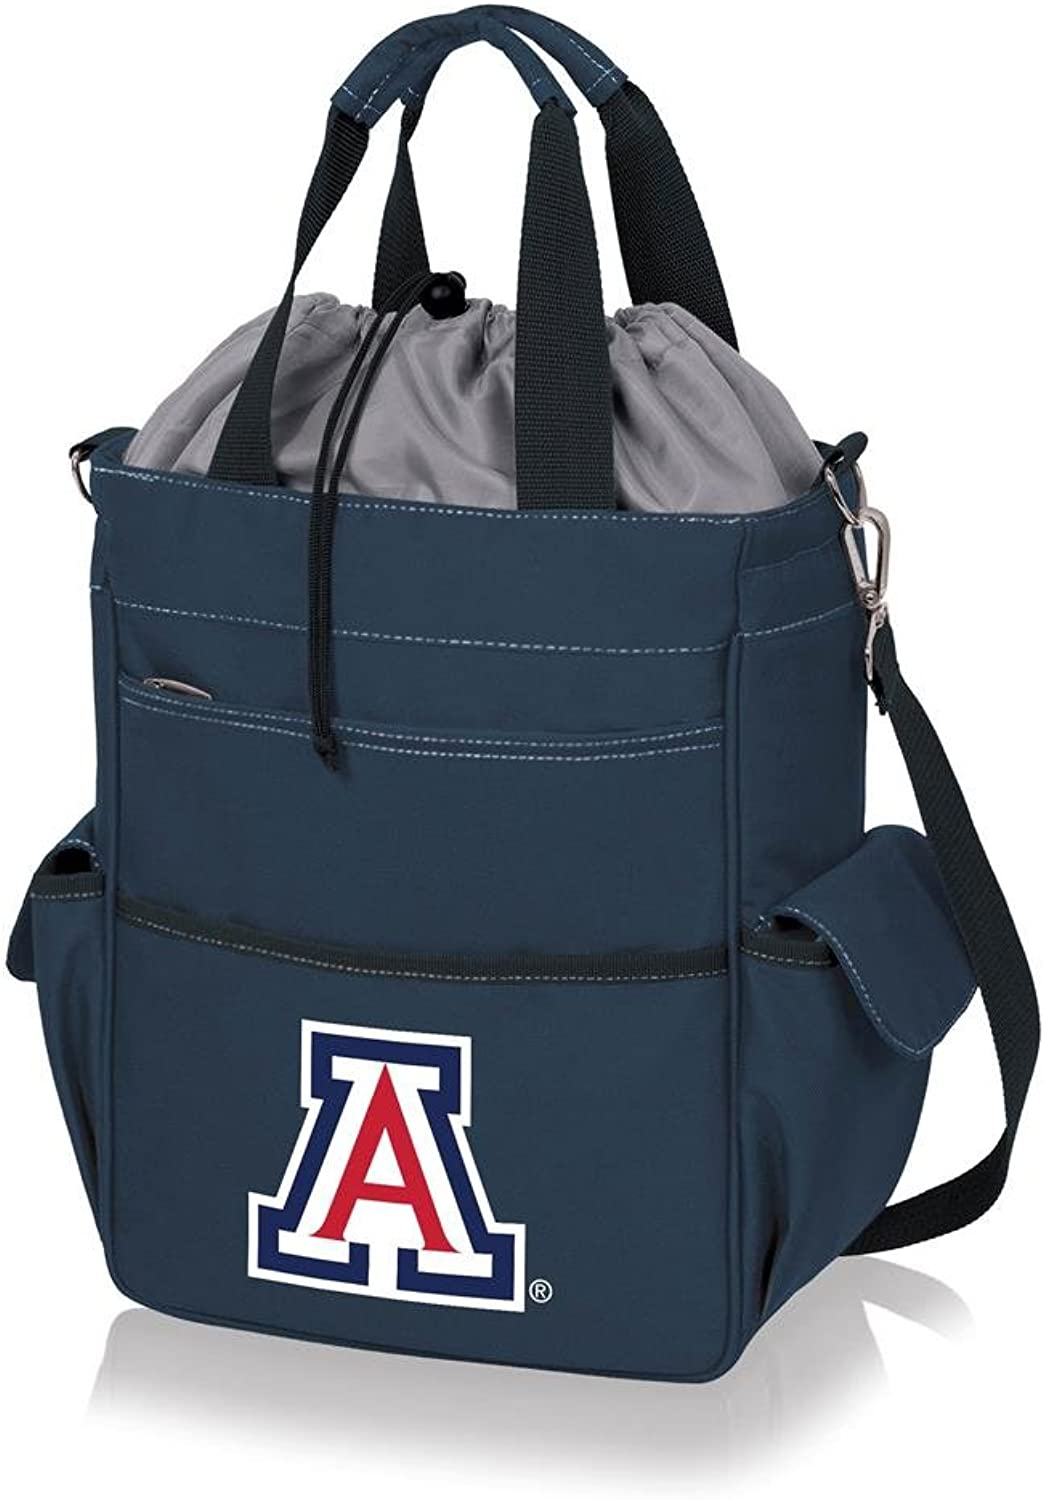 Picnic Time 614001380140 University of Arizona Wildcats Digital Print Activo Tote& 44; Navy